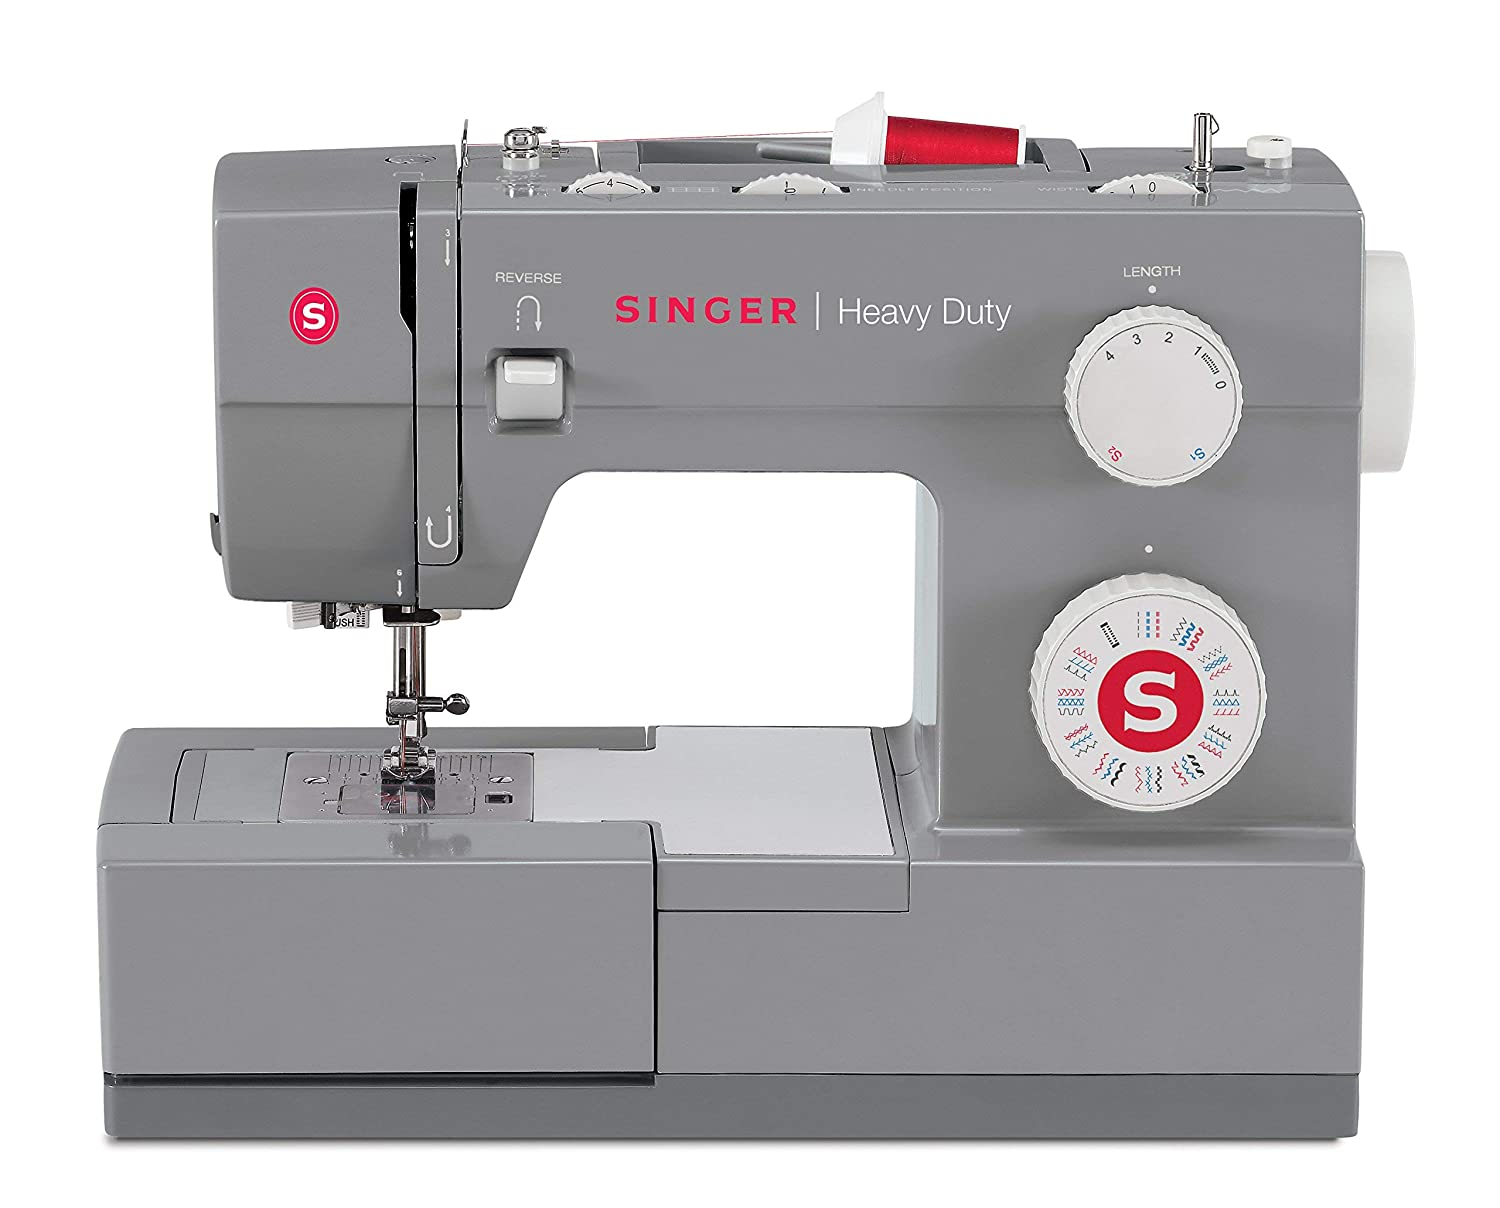 Singer Heavy Duty 4432 Sewing Machine with 32 Built-In Stitches Automatic Needle Threader Renewed Perfect for Sewing All Types of Fabrics with Ease Metal Frame and Stainless Steel Bedplate